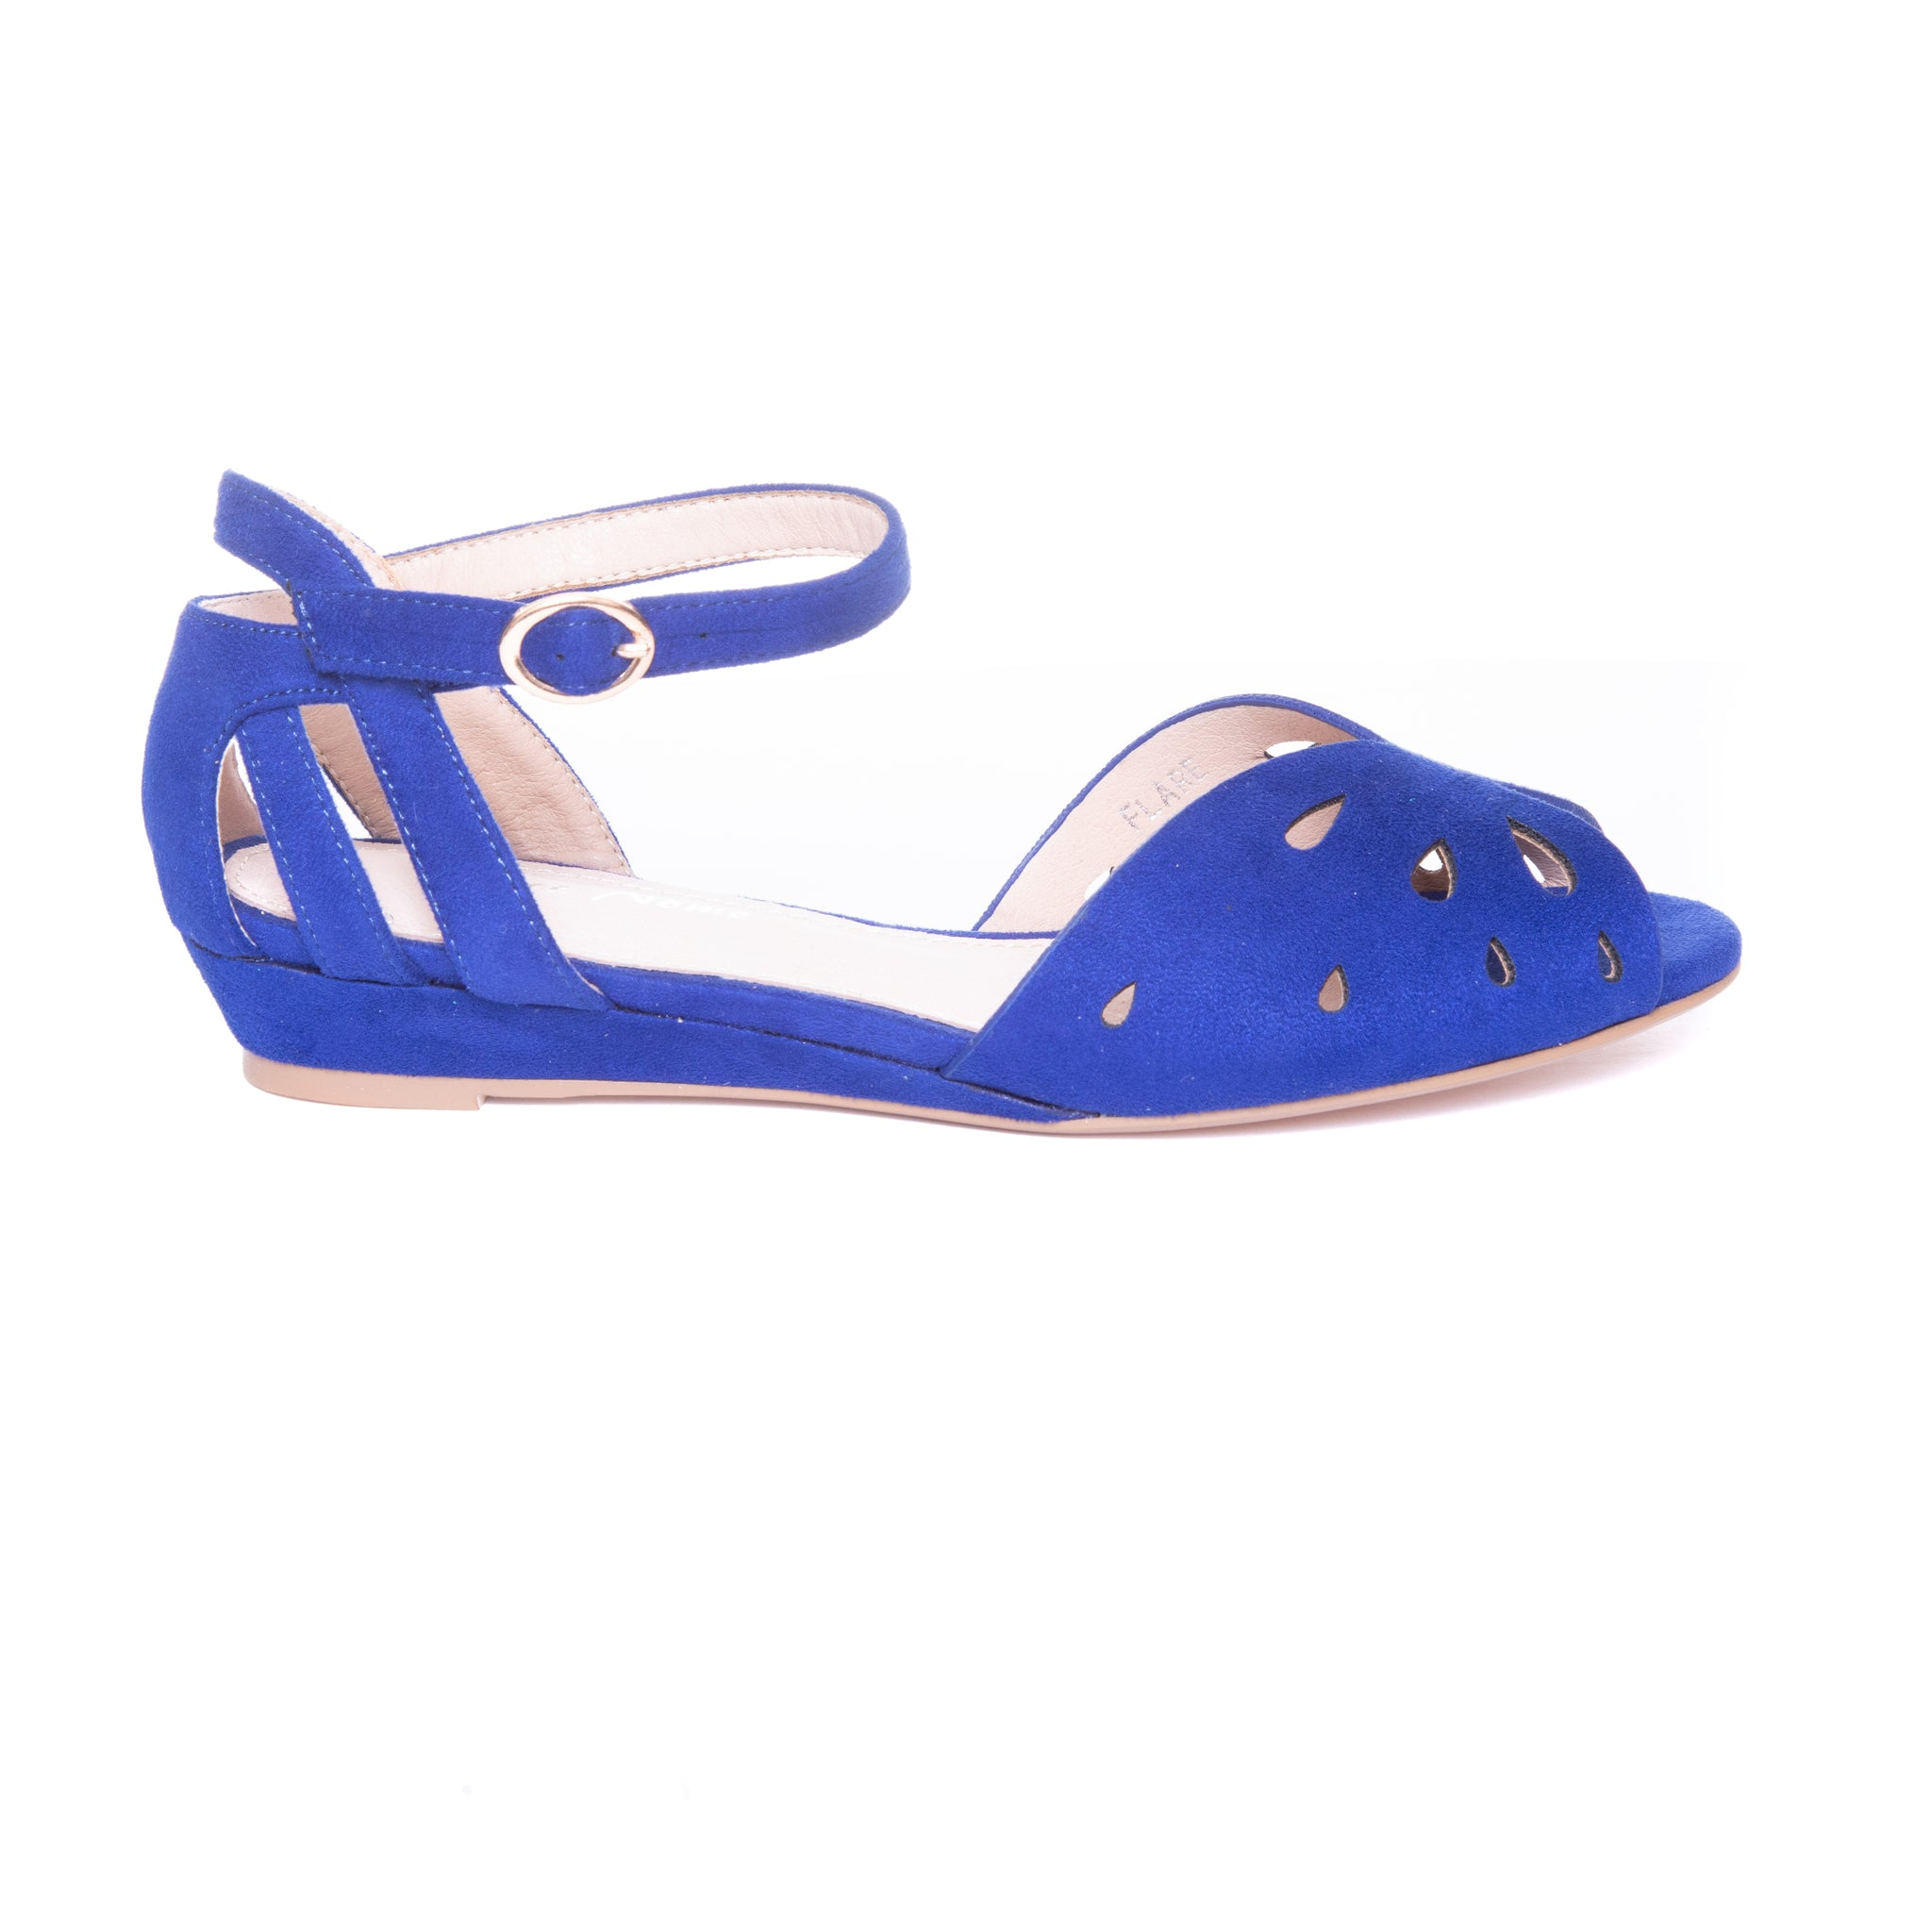 Flare Women's Ankle Strap Flat Sandals